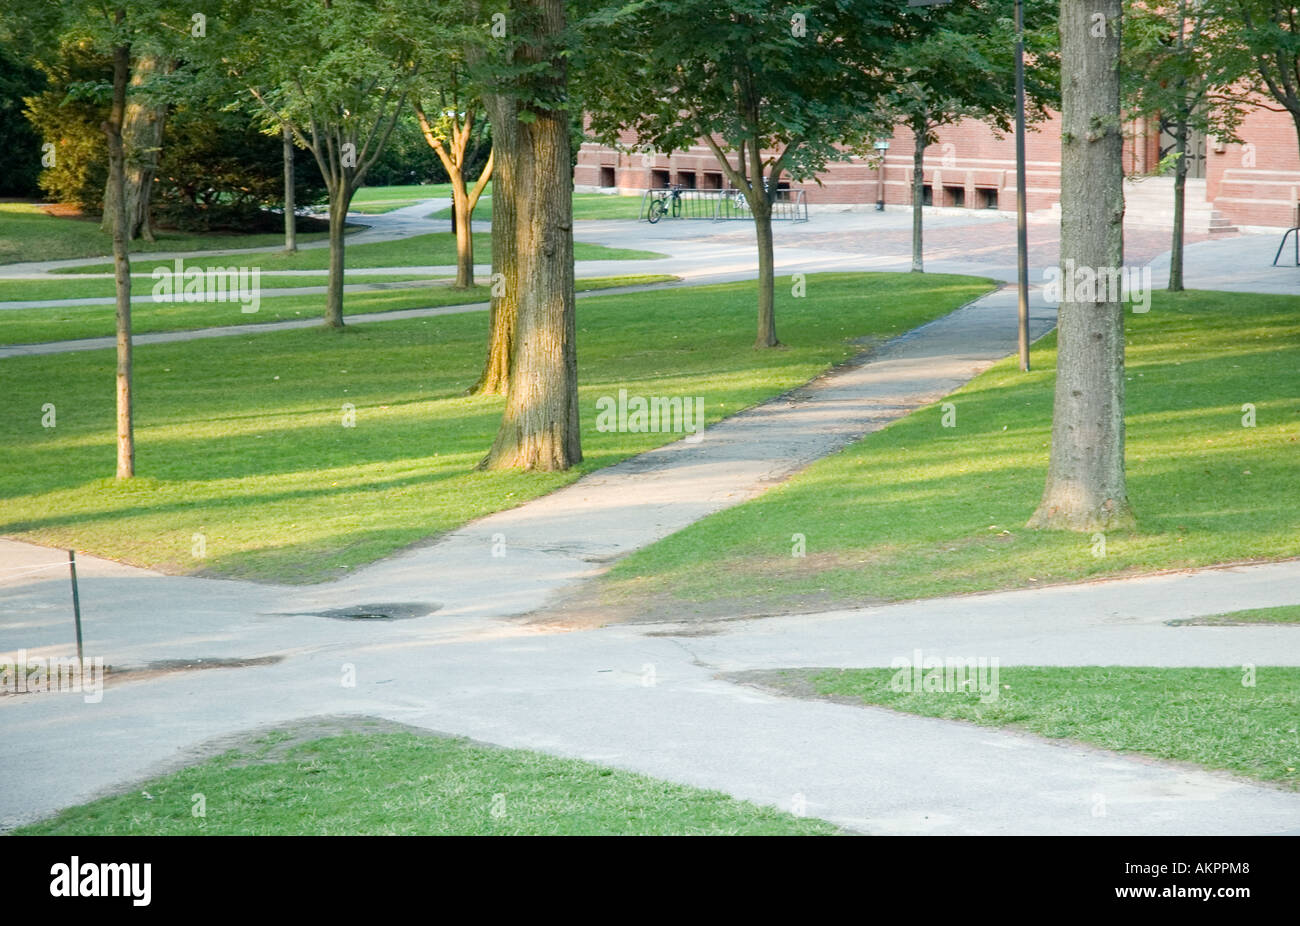 Harvard Yard at Harvard University in Cambridge Massachusetts - Stock Image